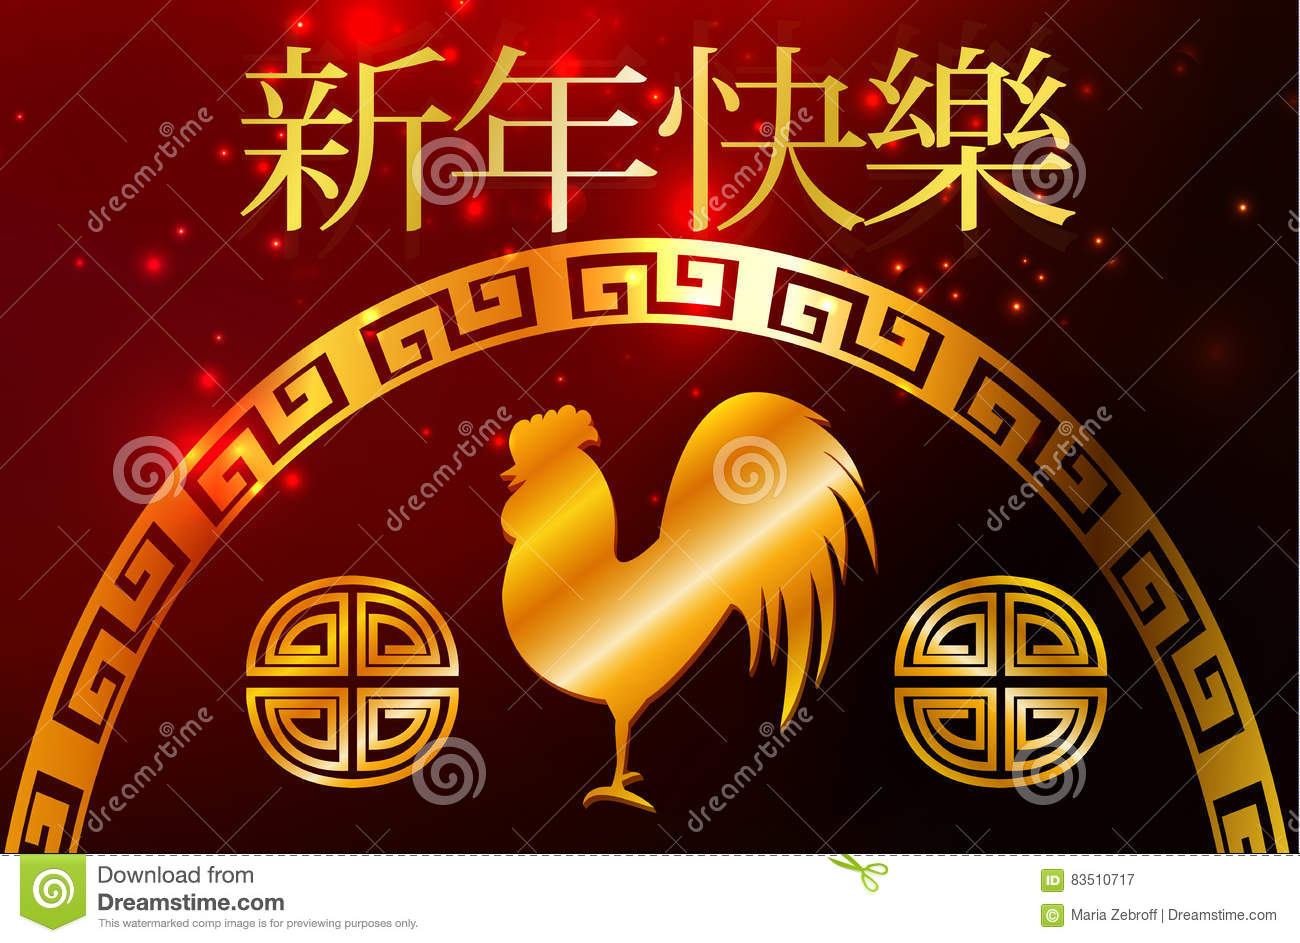 Happy chinese new year card stock vector illustration of happy chinese new year 2017 card with gold rooster and ornaments chinese words means happy chinese new year on mandarin kristyandbryce Choice Image